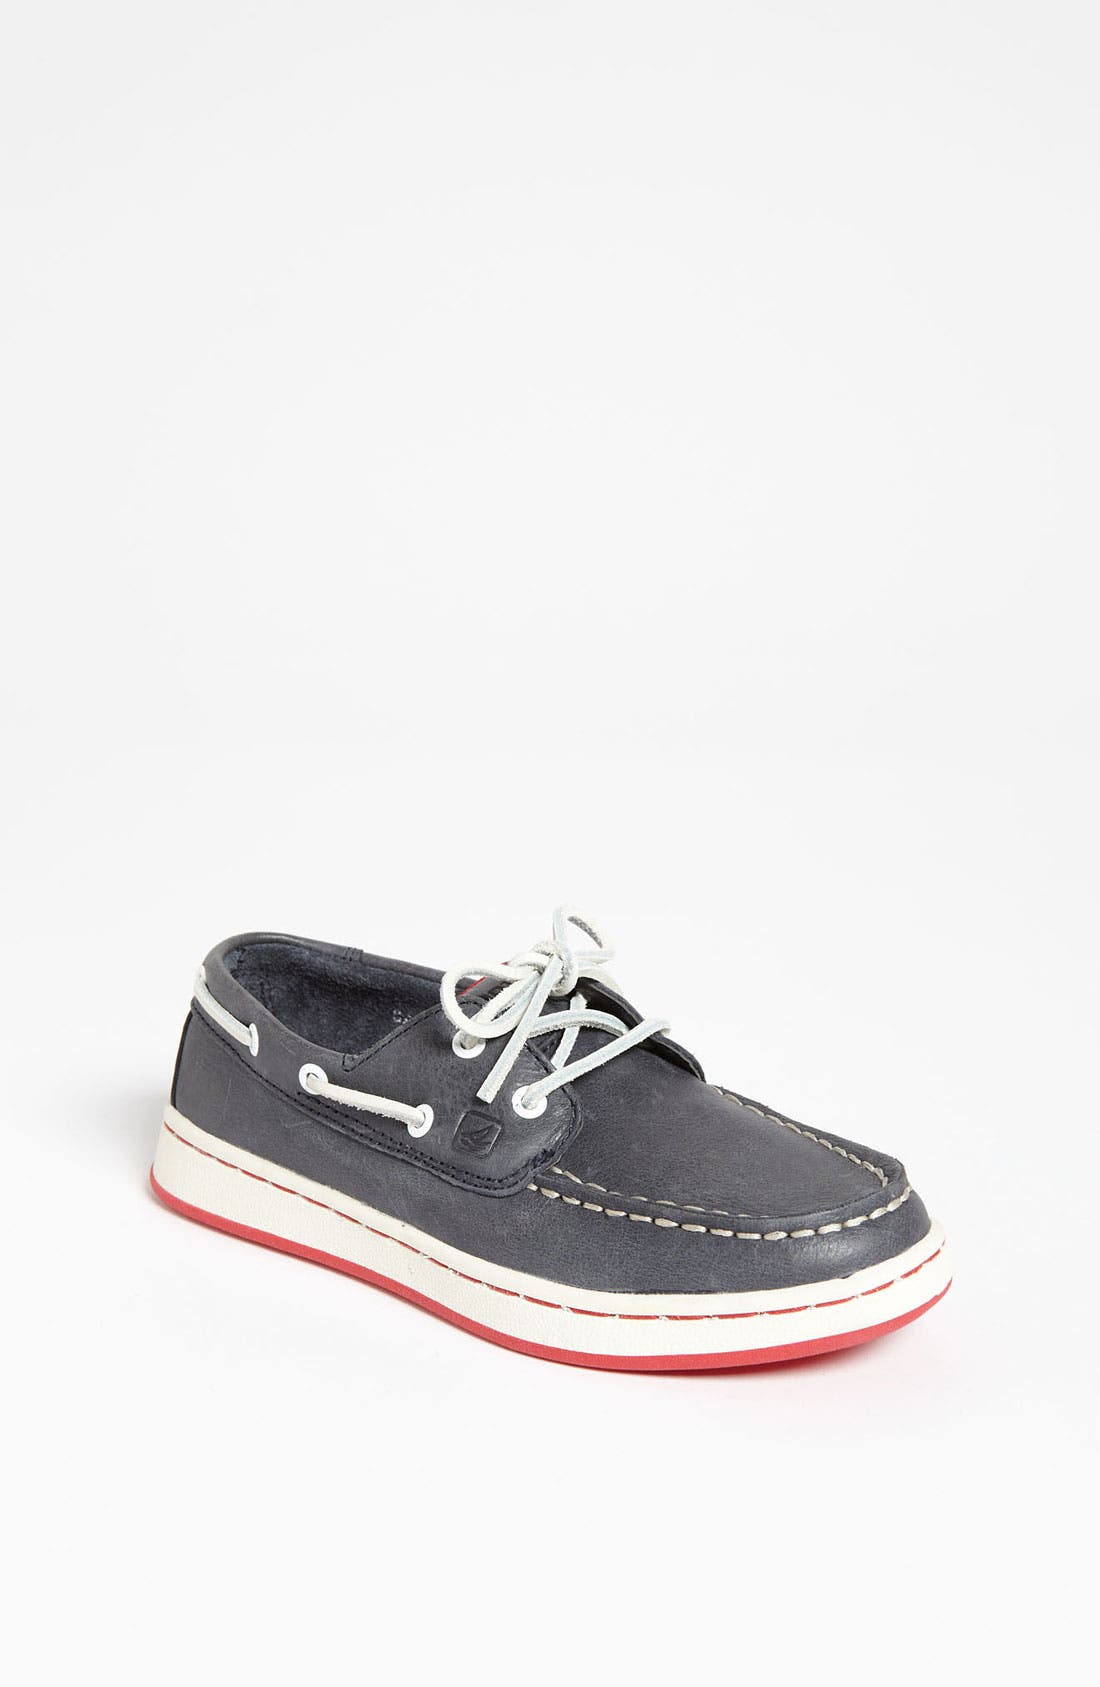 Main Image - Sperry Top-Sider® 'Cupsole' Boat Shoe (Toddler, Little Kid & Big Kid)